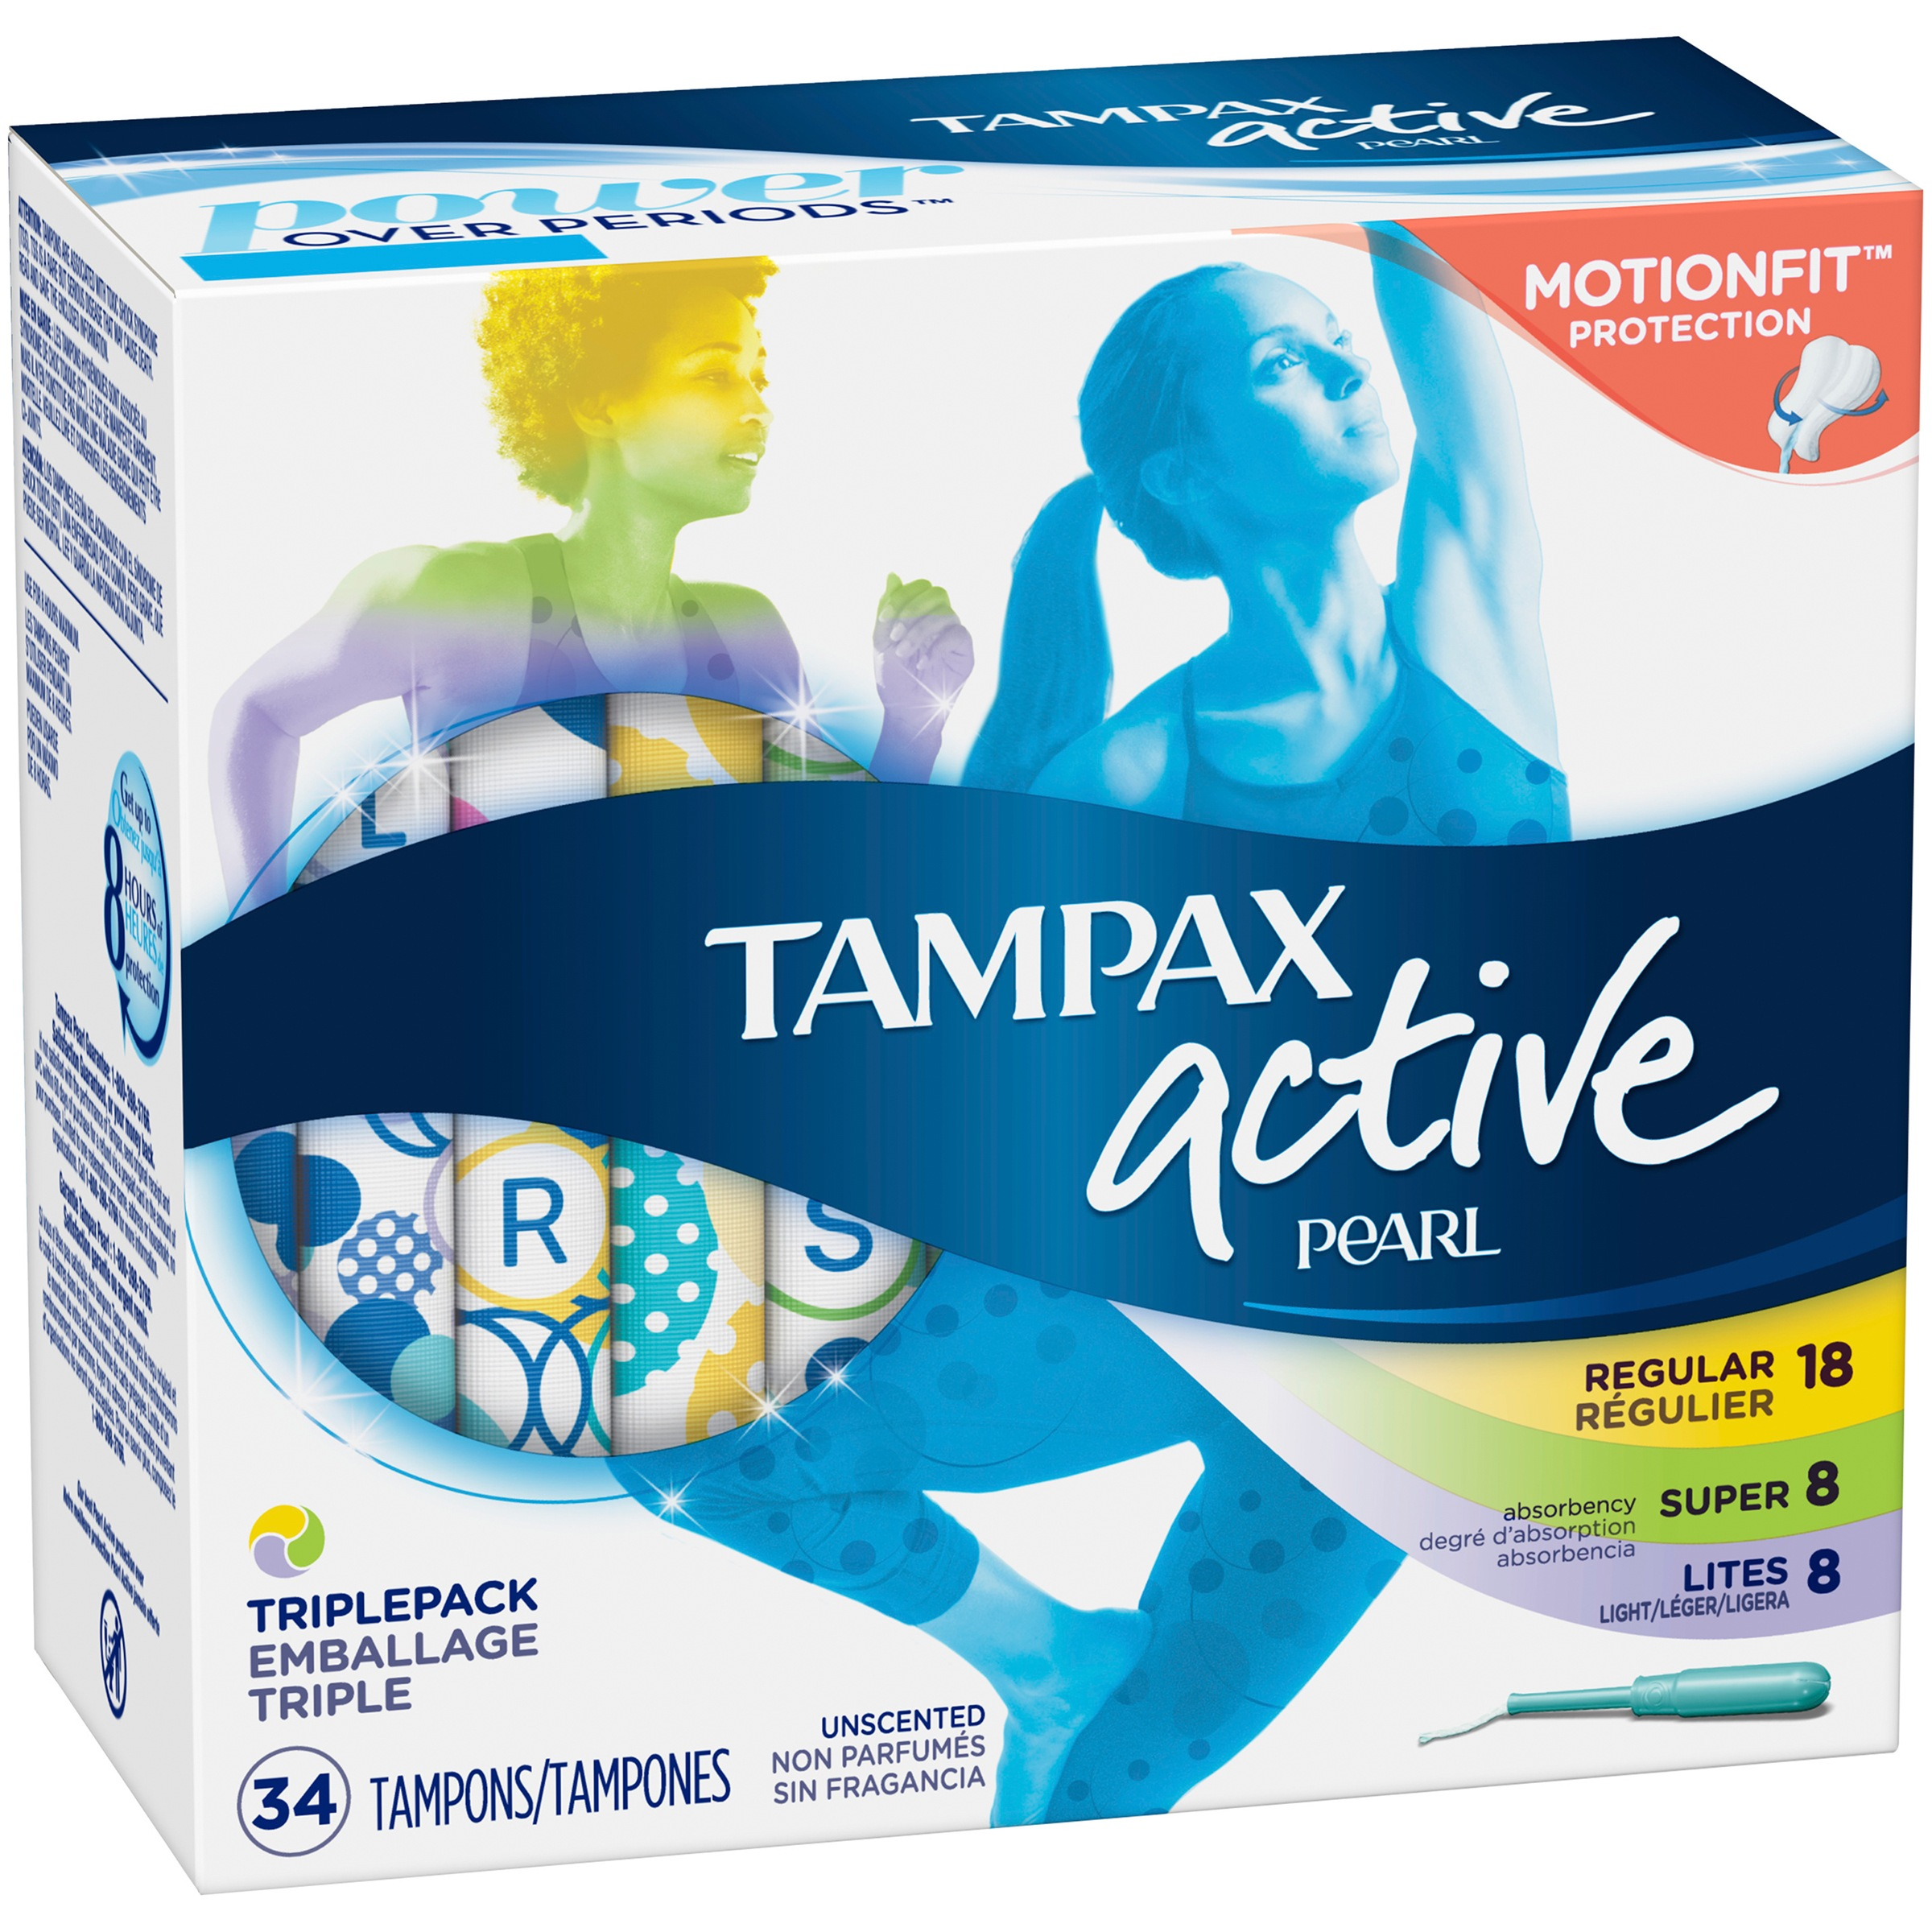 Tampax Pearl Active Plastic Tampons, Triple-Pack, Light/Regular/Super Absorbency, Unscented, 34 Count